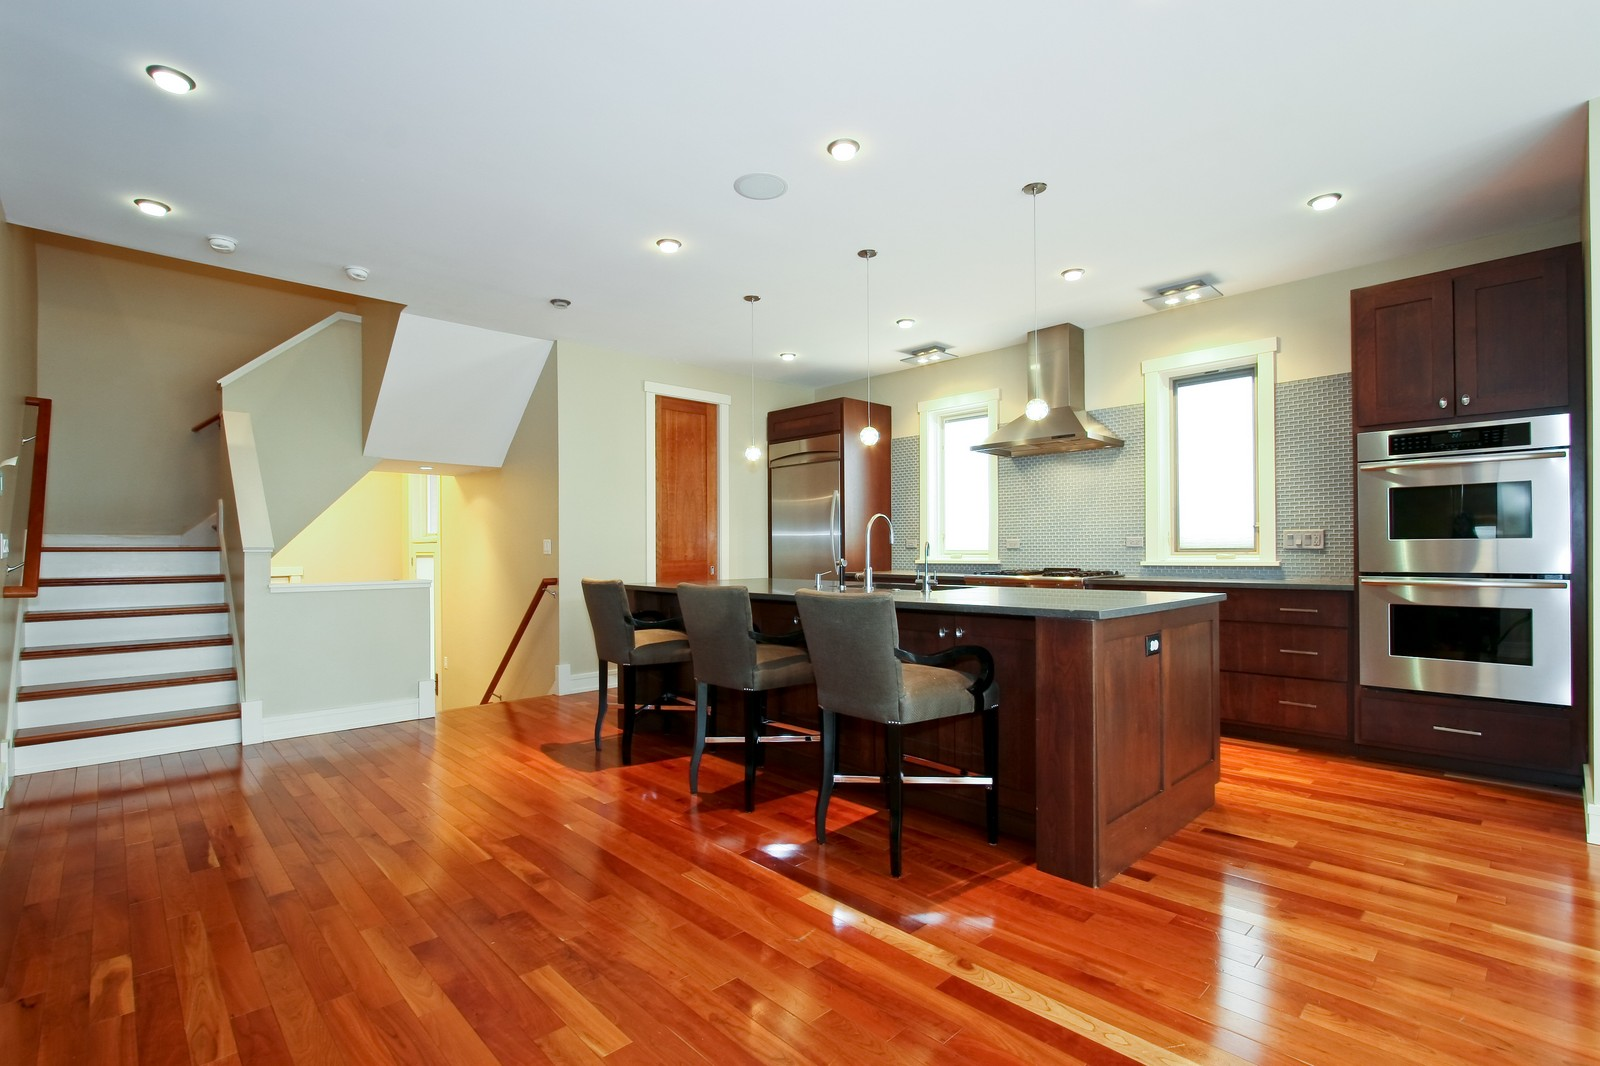 Real Estate Photography - 444 W. 38th Street, Chicago, IL, 60609 - Thermador appliances, 5x5 walk in pantry